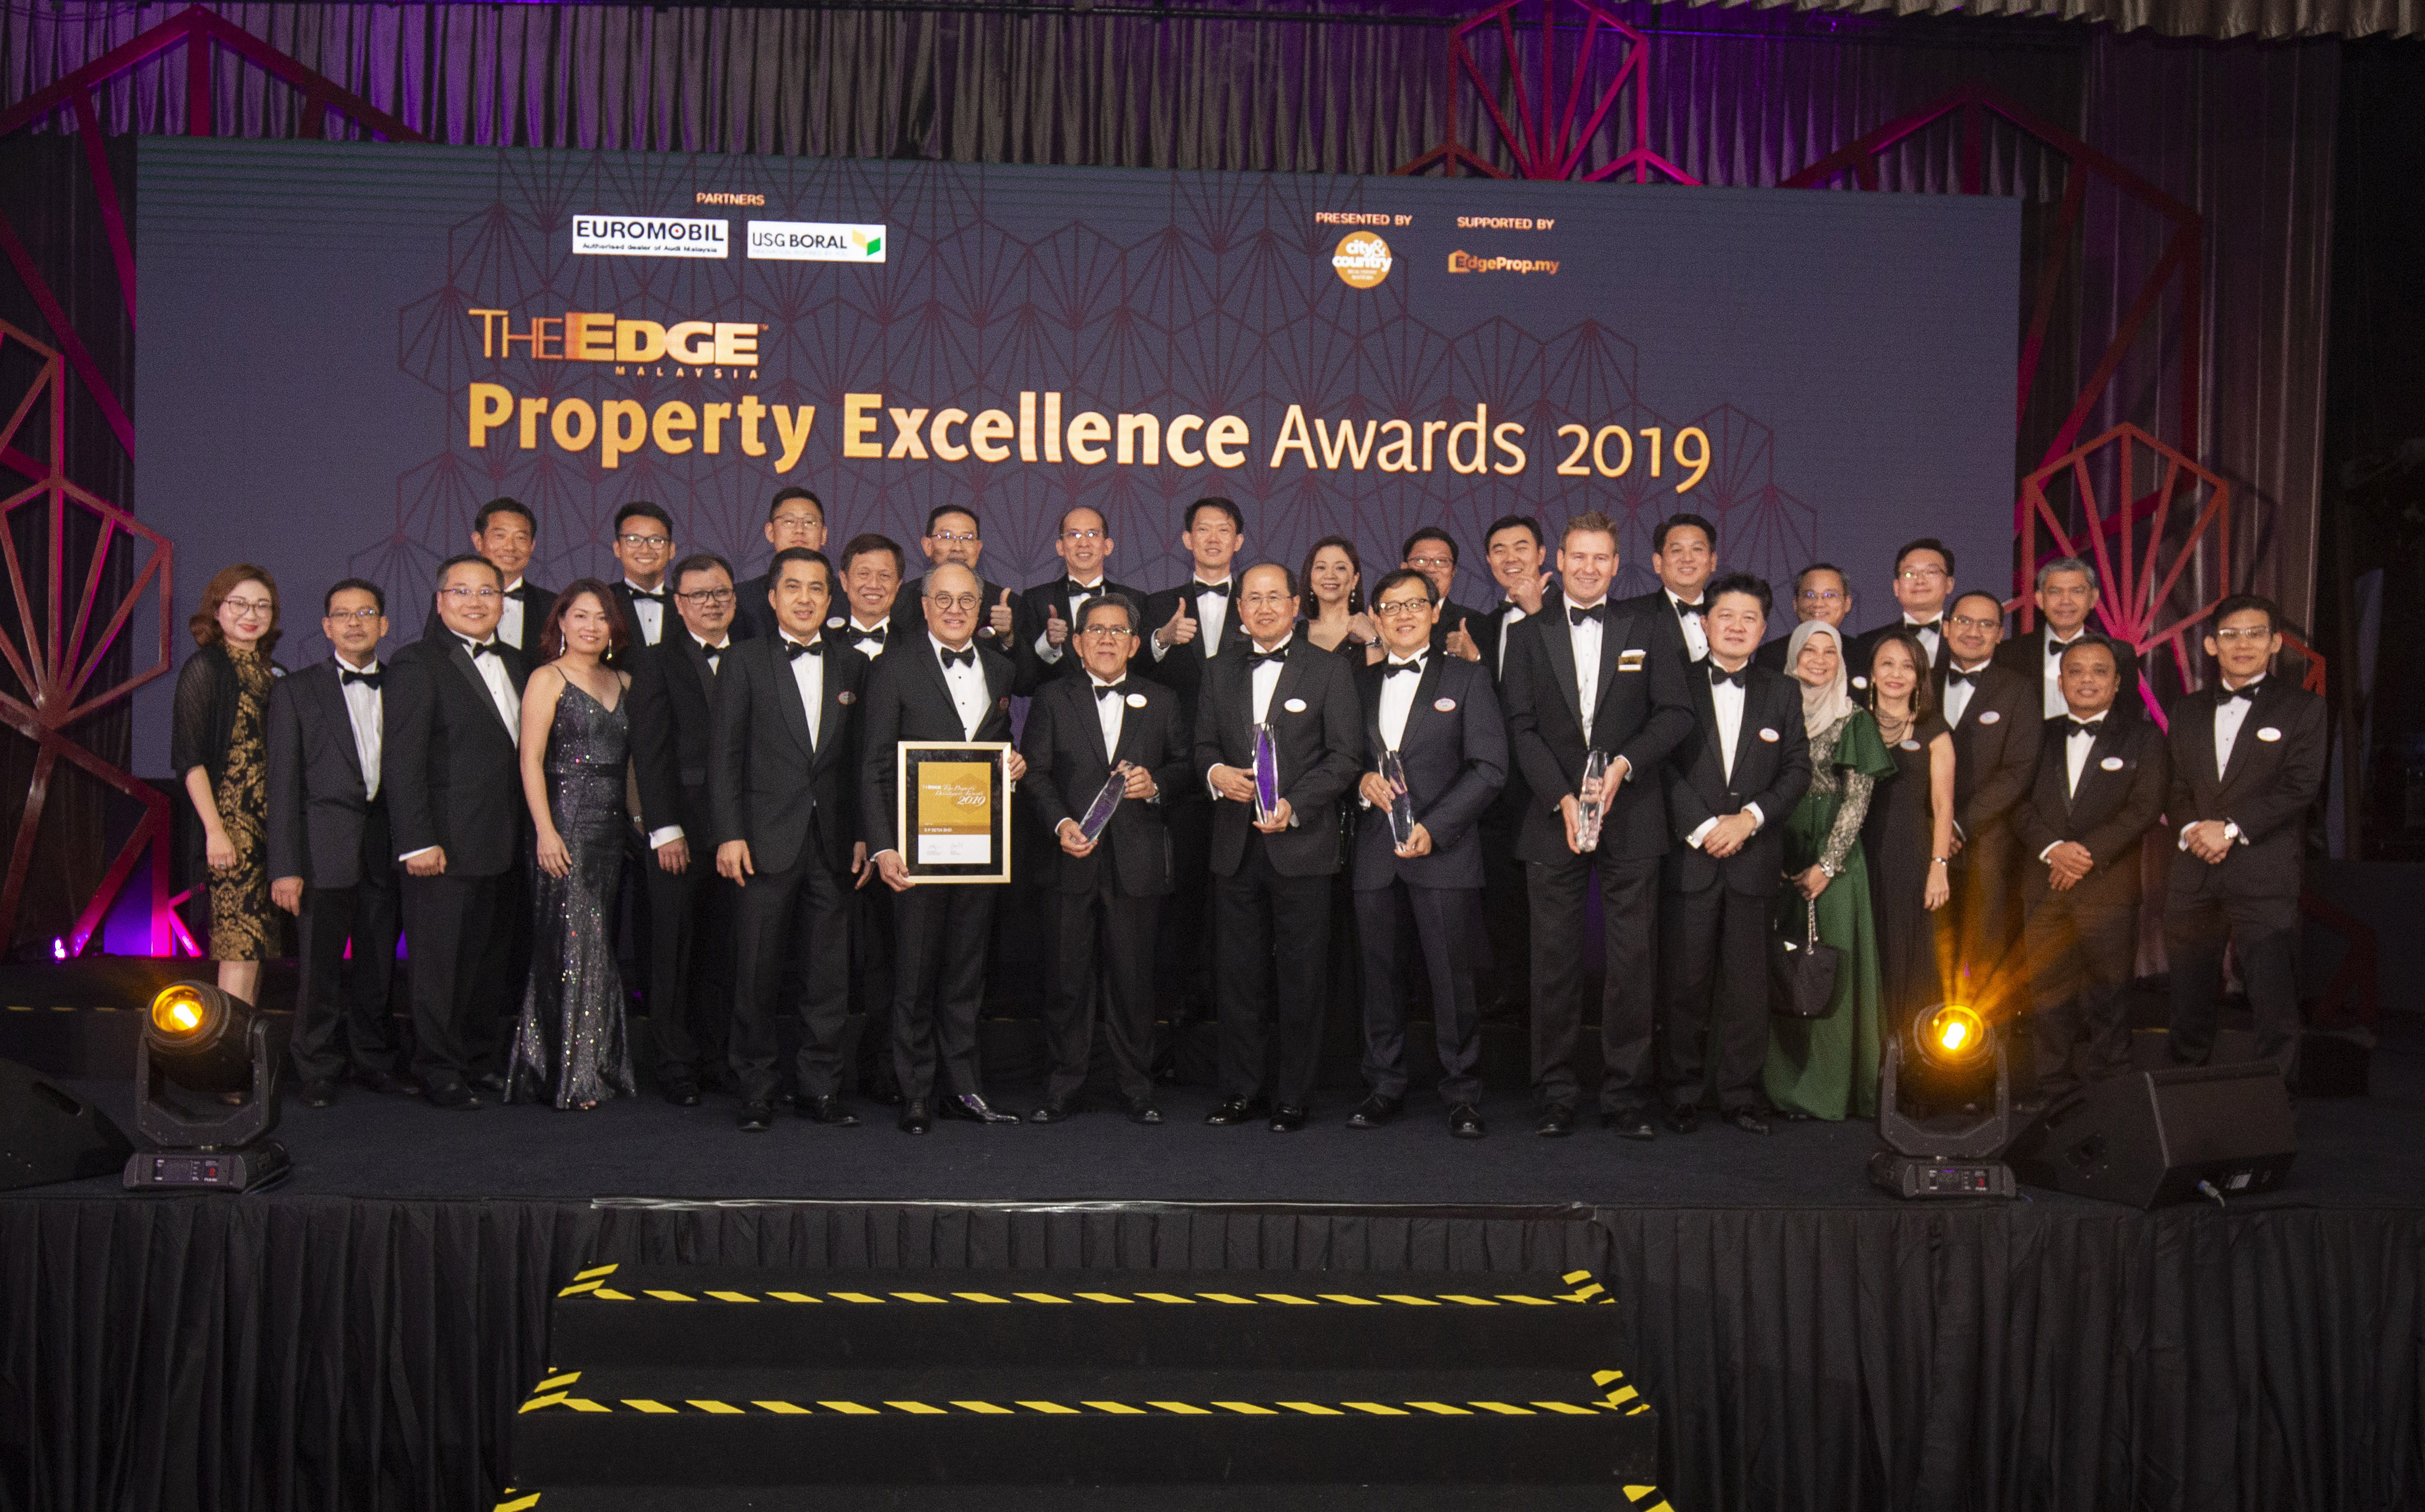 S P Setia Retains No.1 Spot for A Record-Breaking 12th Time at The Edge Malaysia Property Excellence Awards 2019